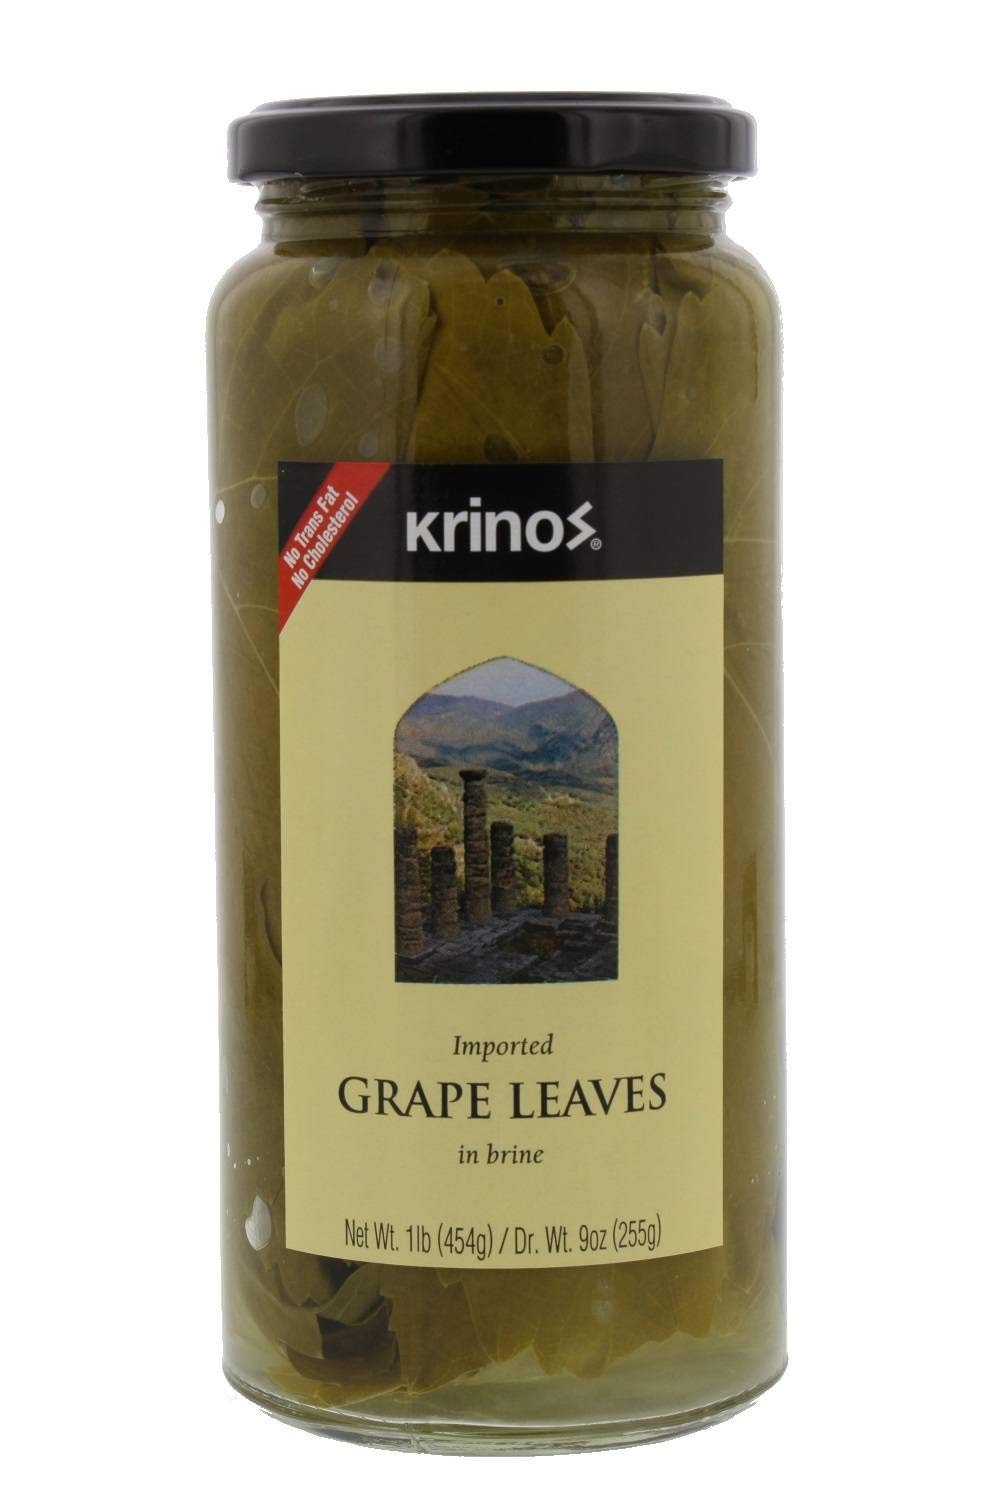 Krinos Gourmet Grape Leaves In Vinegar Brine 16 Ounces 454 Grams Amazon Com Grocery Gourmet Food